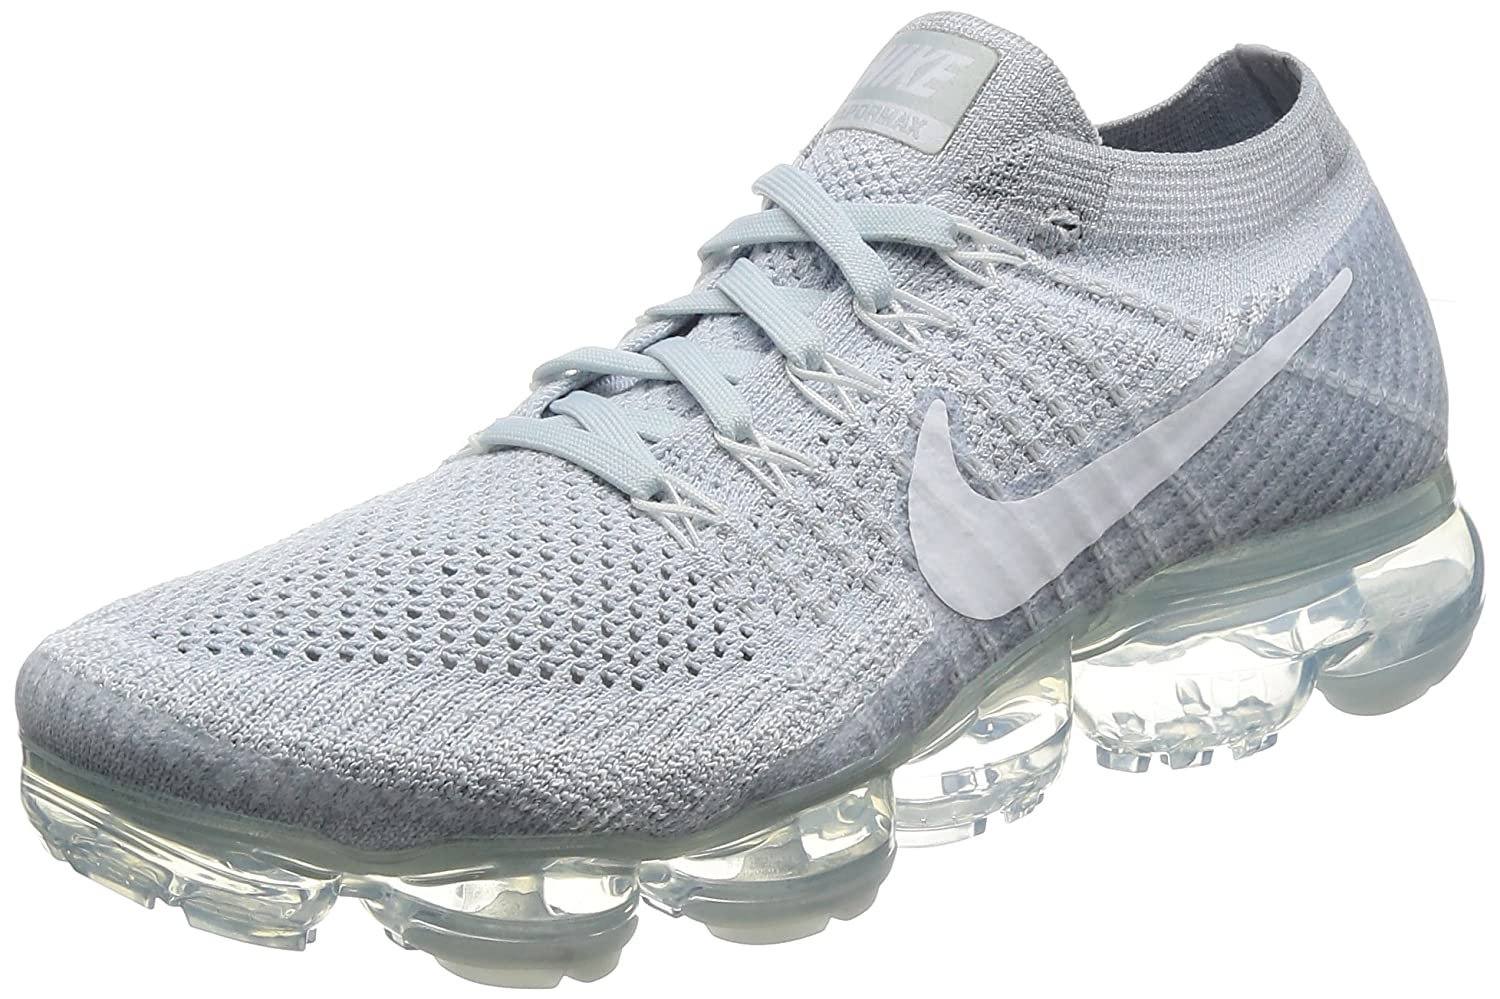 4ce2712fe0 Amazon.com | Men's Nike Air Vapormax Flyknit Running Shoe | Fashion Sneakers